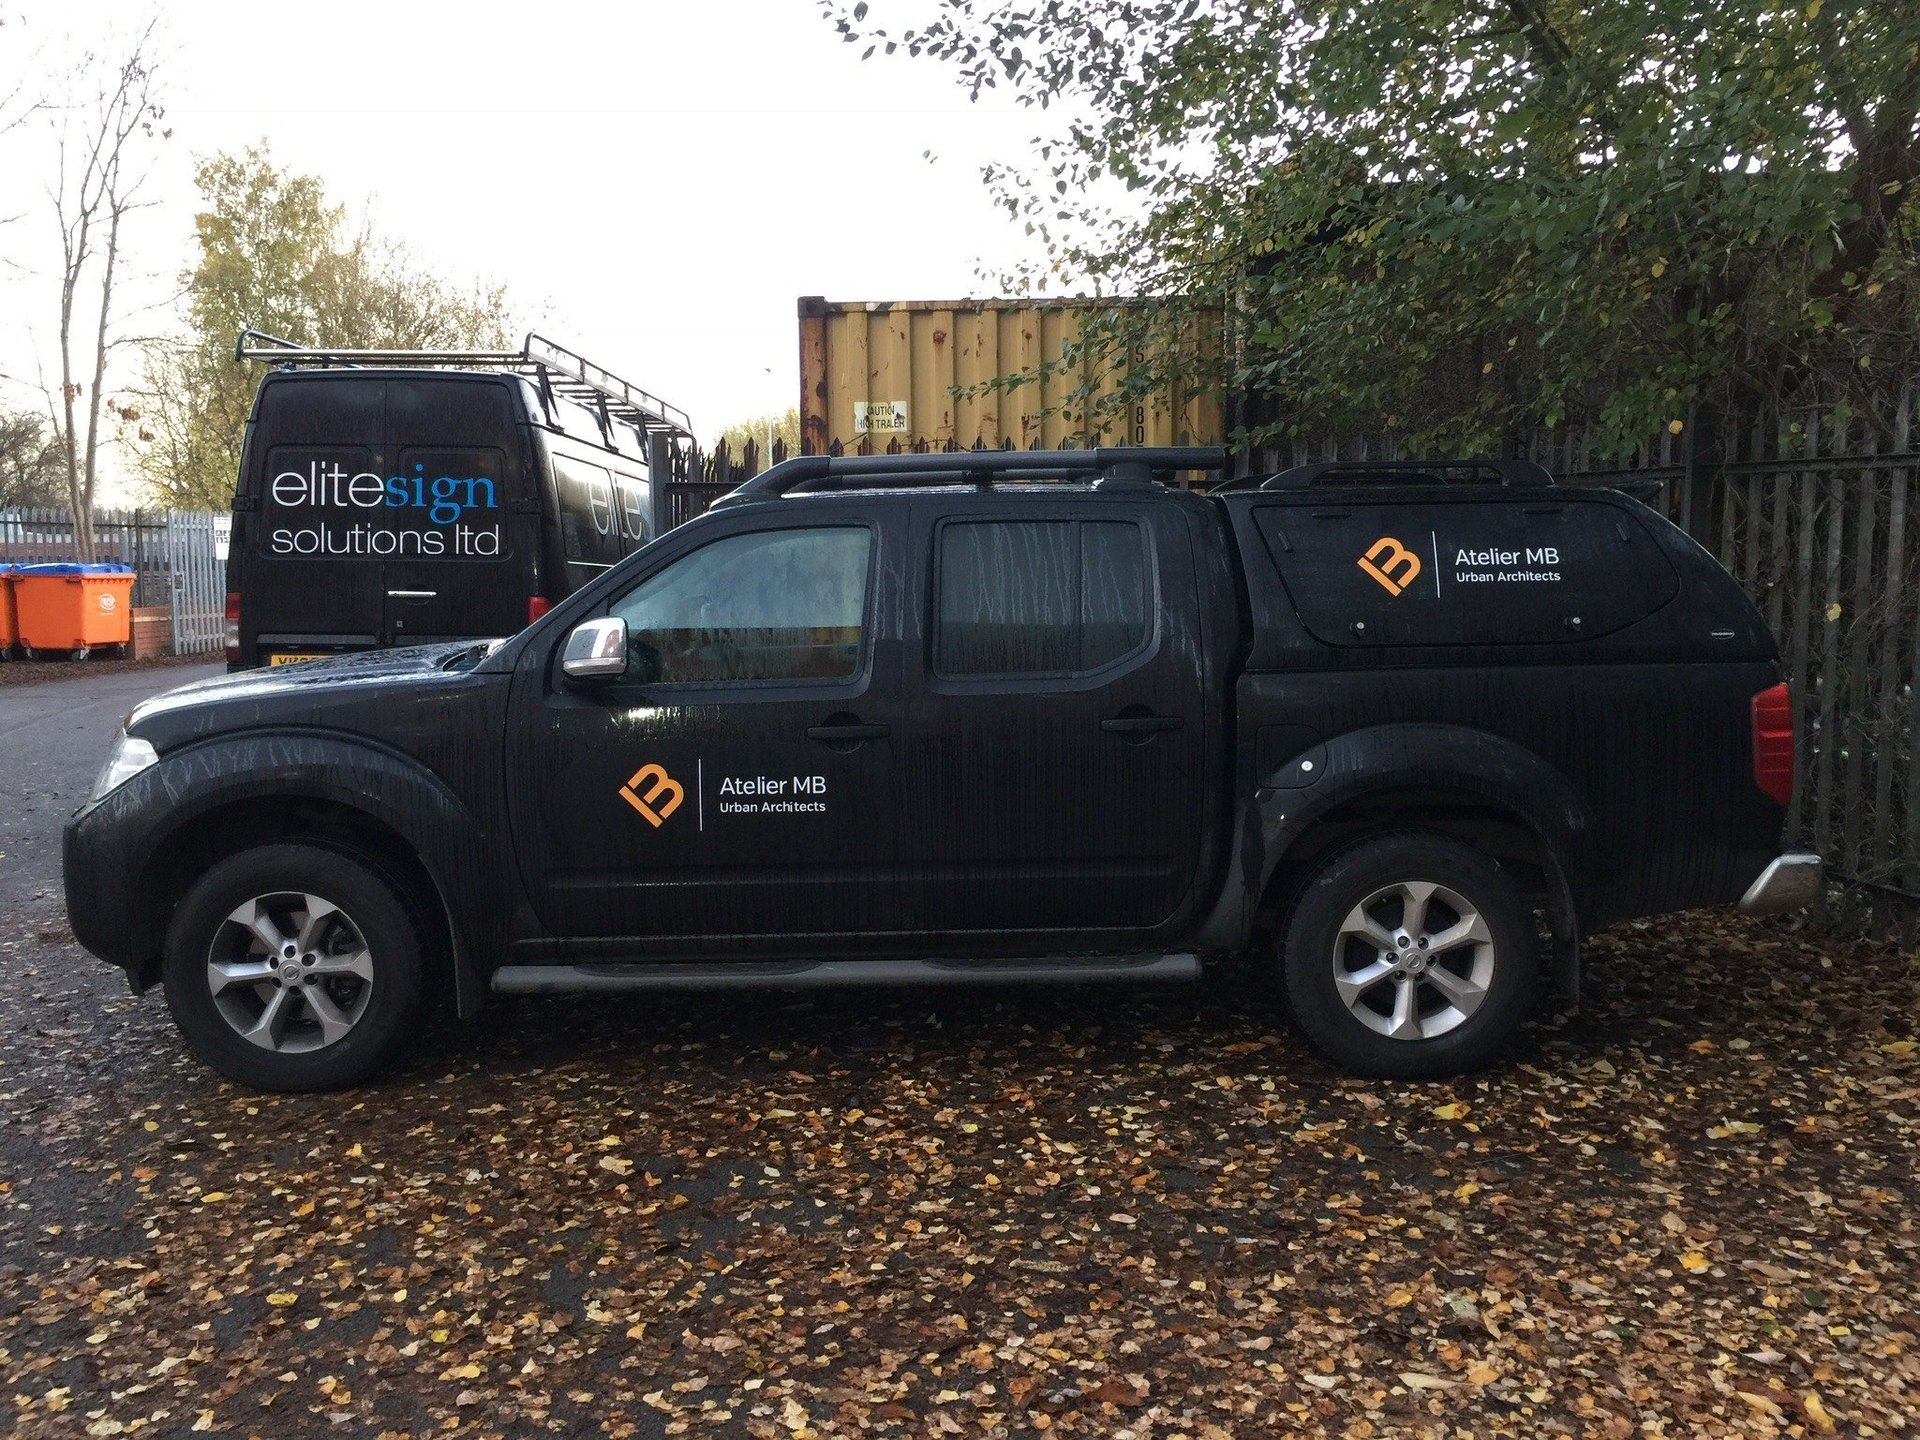 Black Pick Up Truck With Company Branded Signs in Manchester